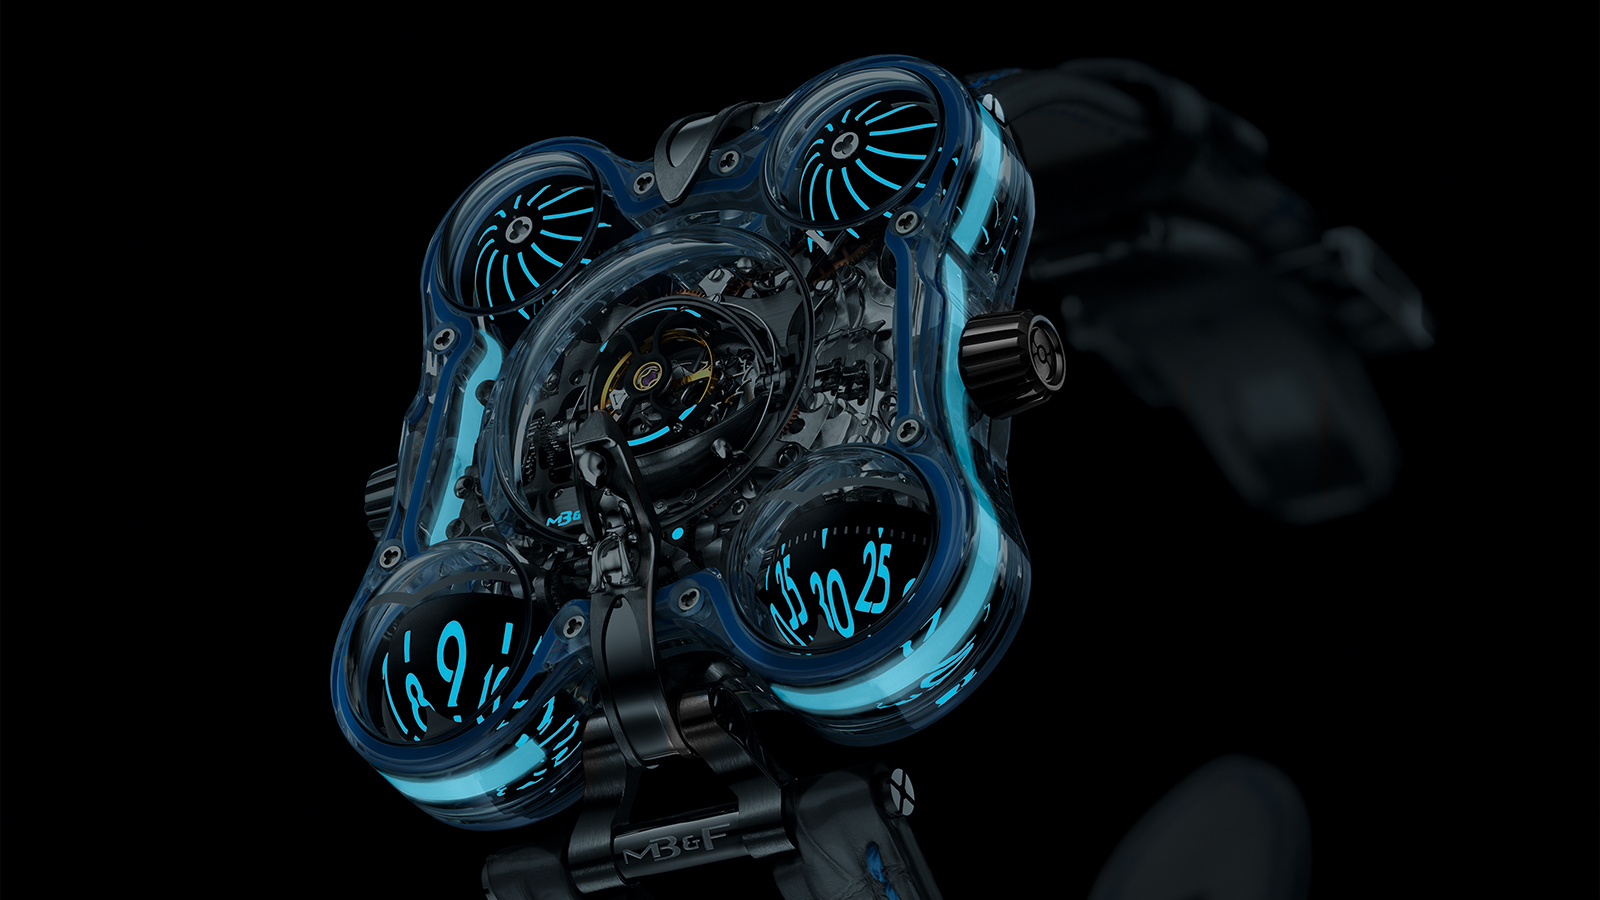 MB&F'S HM6 ALIEN NATION WATCH